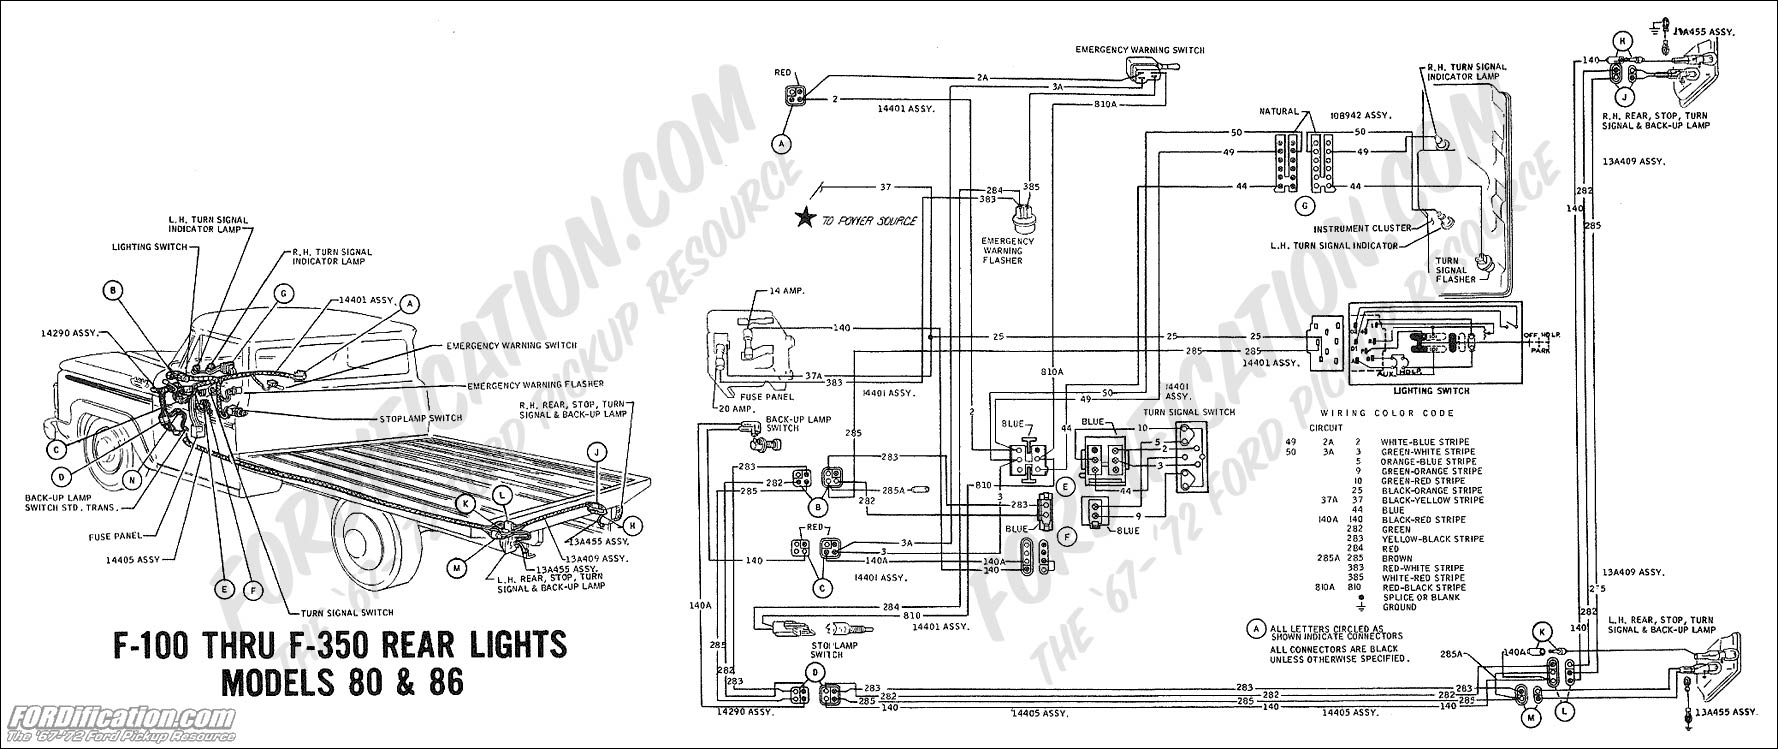 86 chevy truck alternator wiring diagram 2004 nissan 350z bose radio 92 f150 manual e books ford f 150 diagram86 for